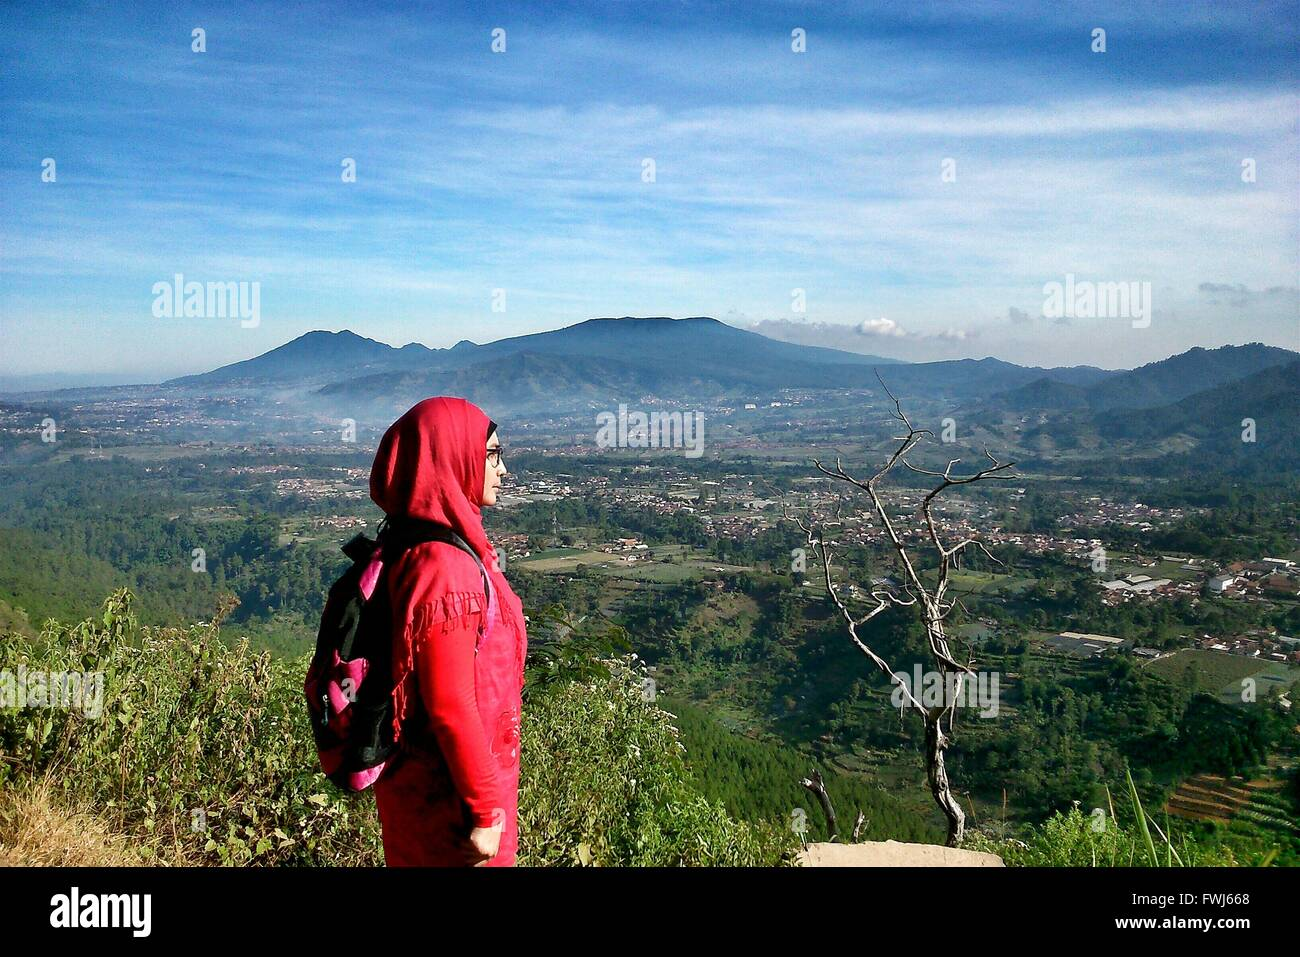 Woman Wearing Hijab Standing On Mountain - Stock Image